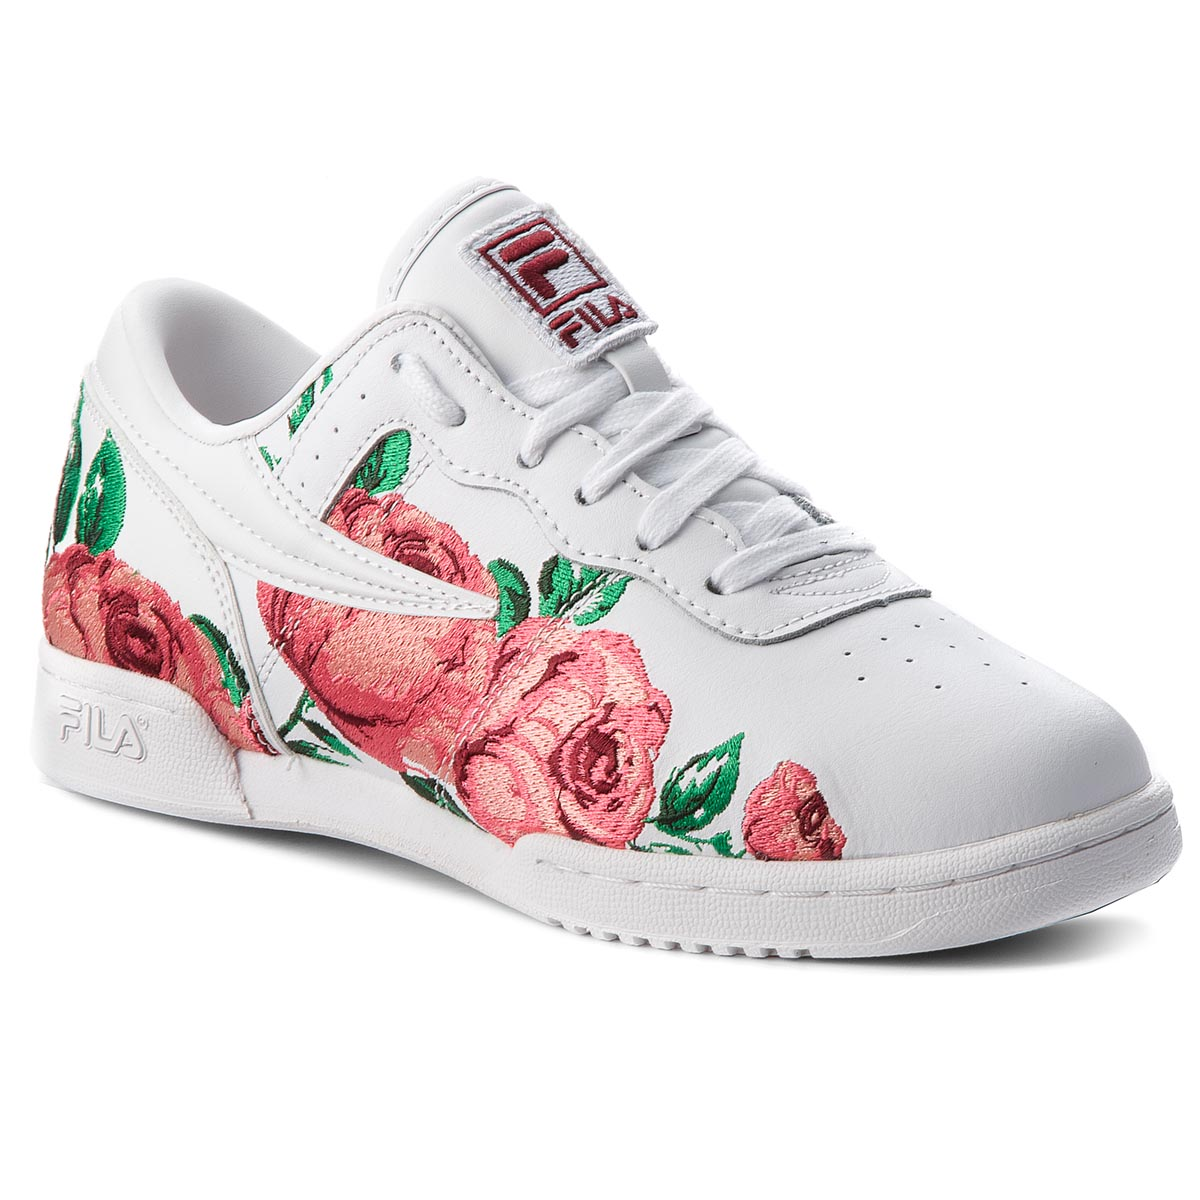 Sneakersy FILA - Original Fitness Embroidery 5FM00014.155 White/Desert Flower/Black